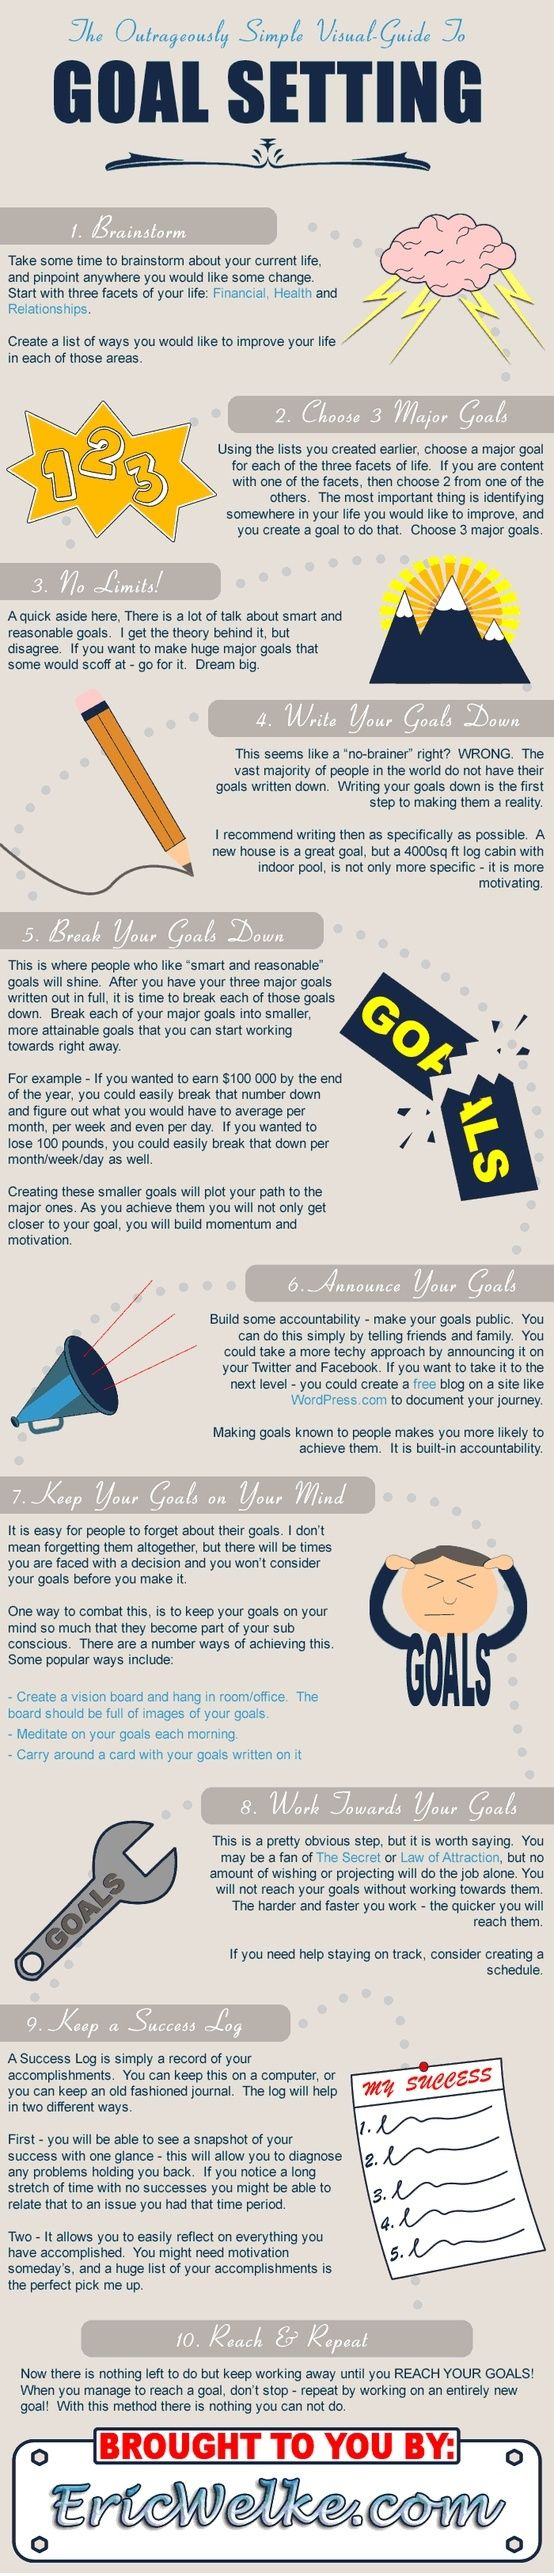 best images about goal setting short term goals outrageously simple visual guide to goal setting infographic by eric welke